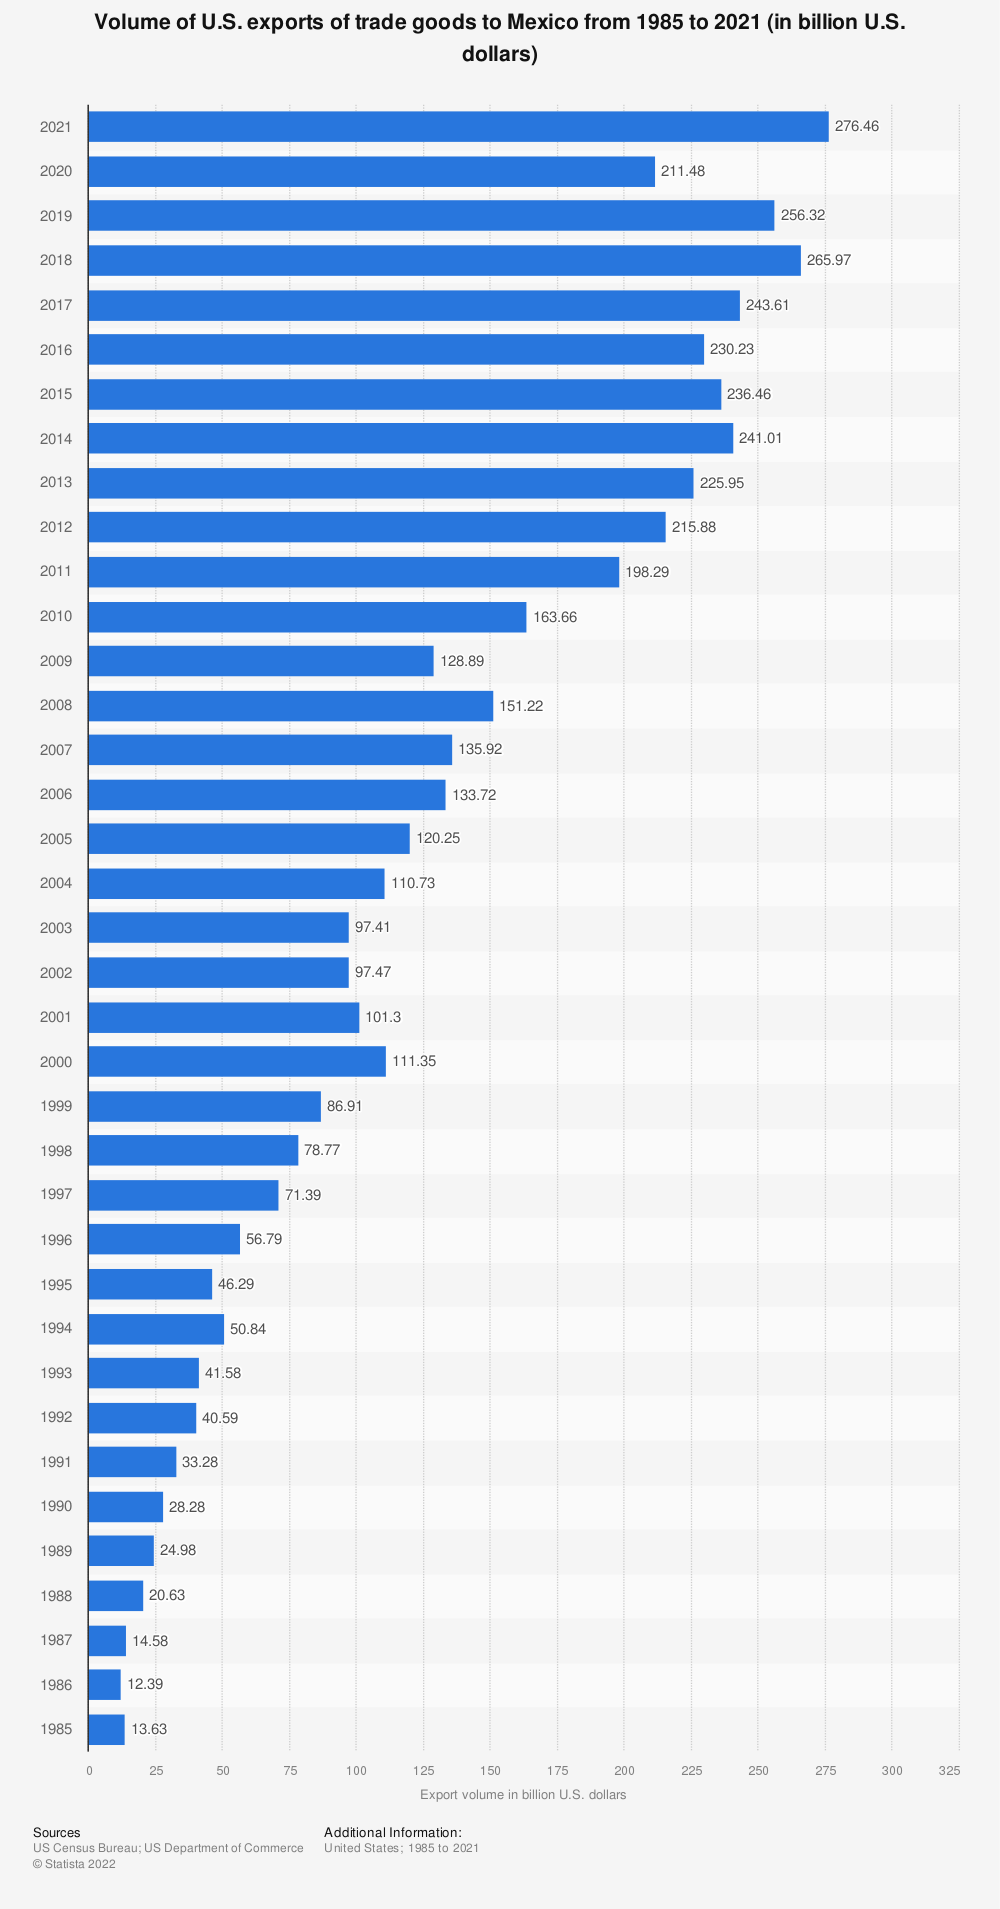 Statistic: Volume of U.S. exports of trade goods to Mexico from 1985 to 2018 (in billion U.S. dollars) | Statista